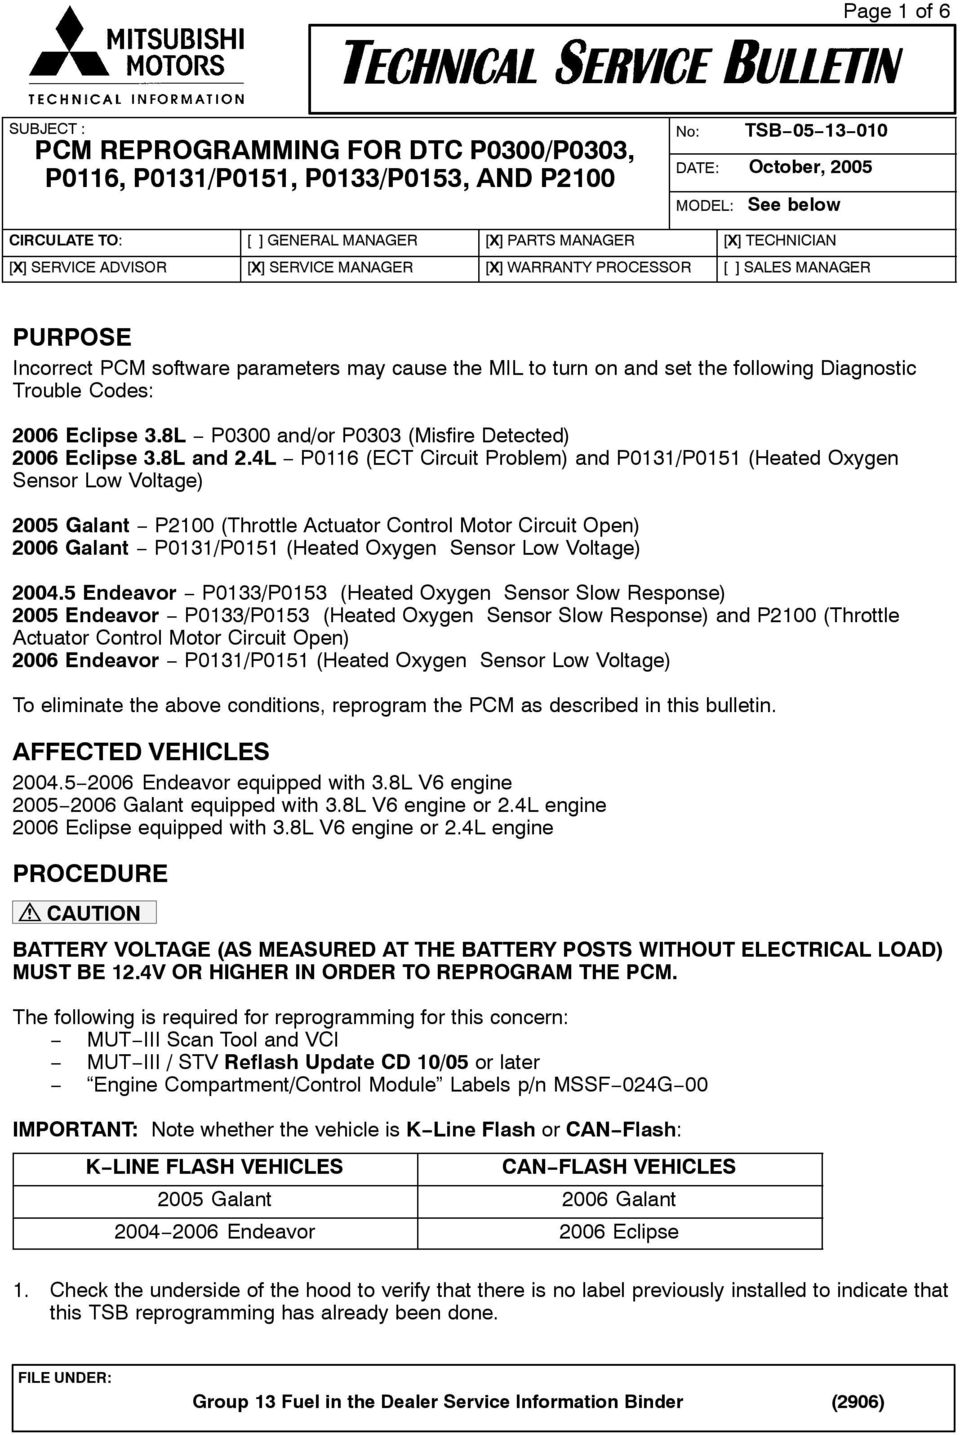 Toyota Sienna Service Manual: Actuator Supply Voltage Circuit Open